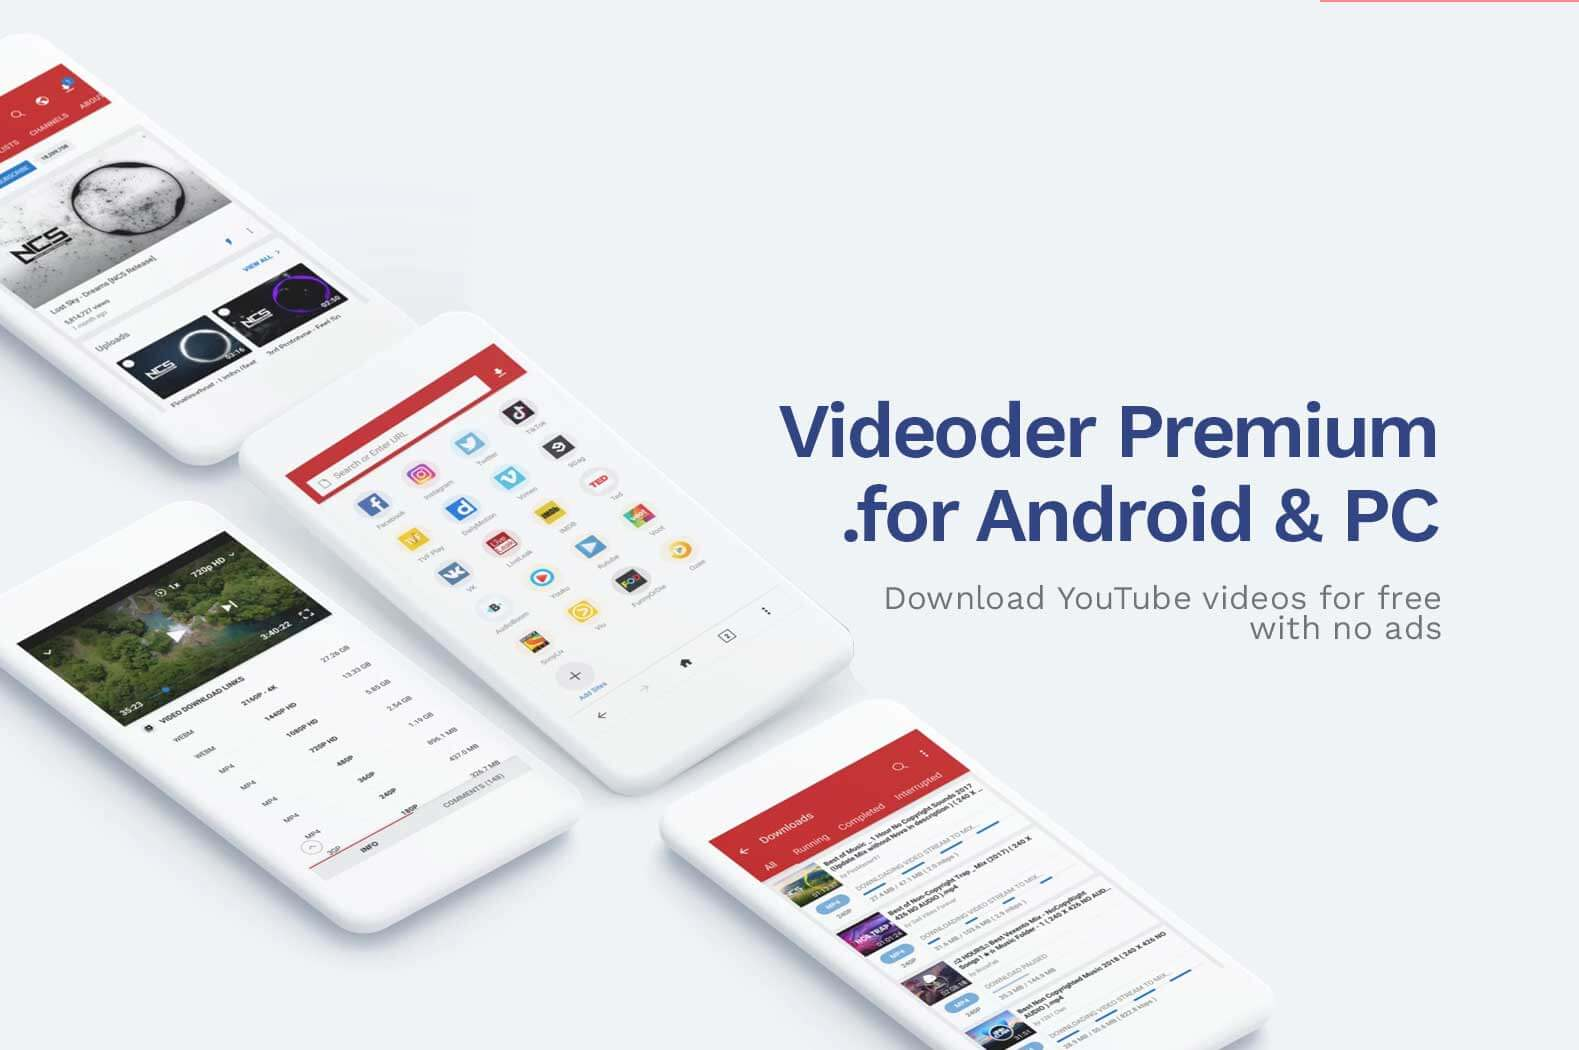 Videoder Premium Downloader APK Latest Version 14.4.2 (Updated)